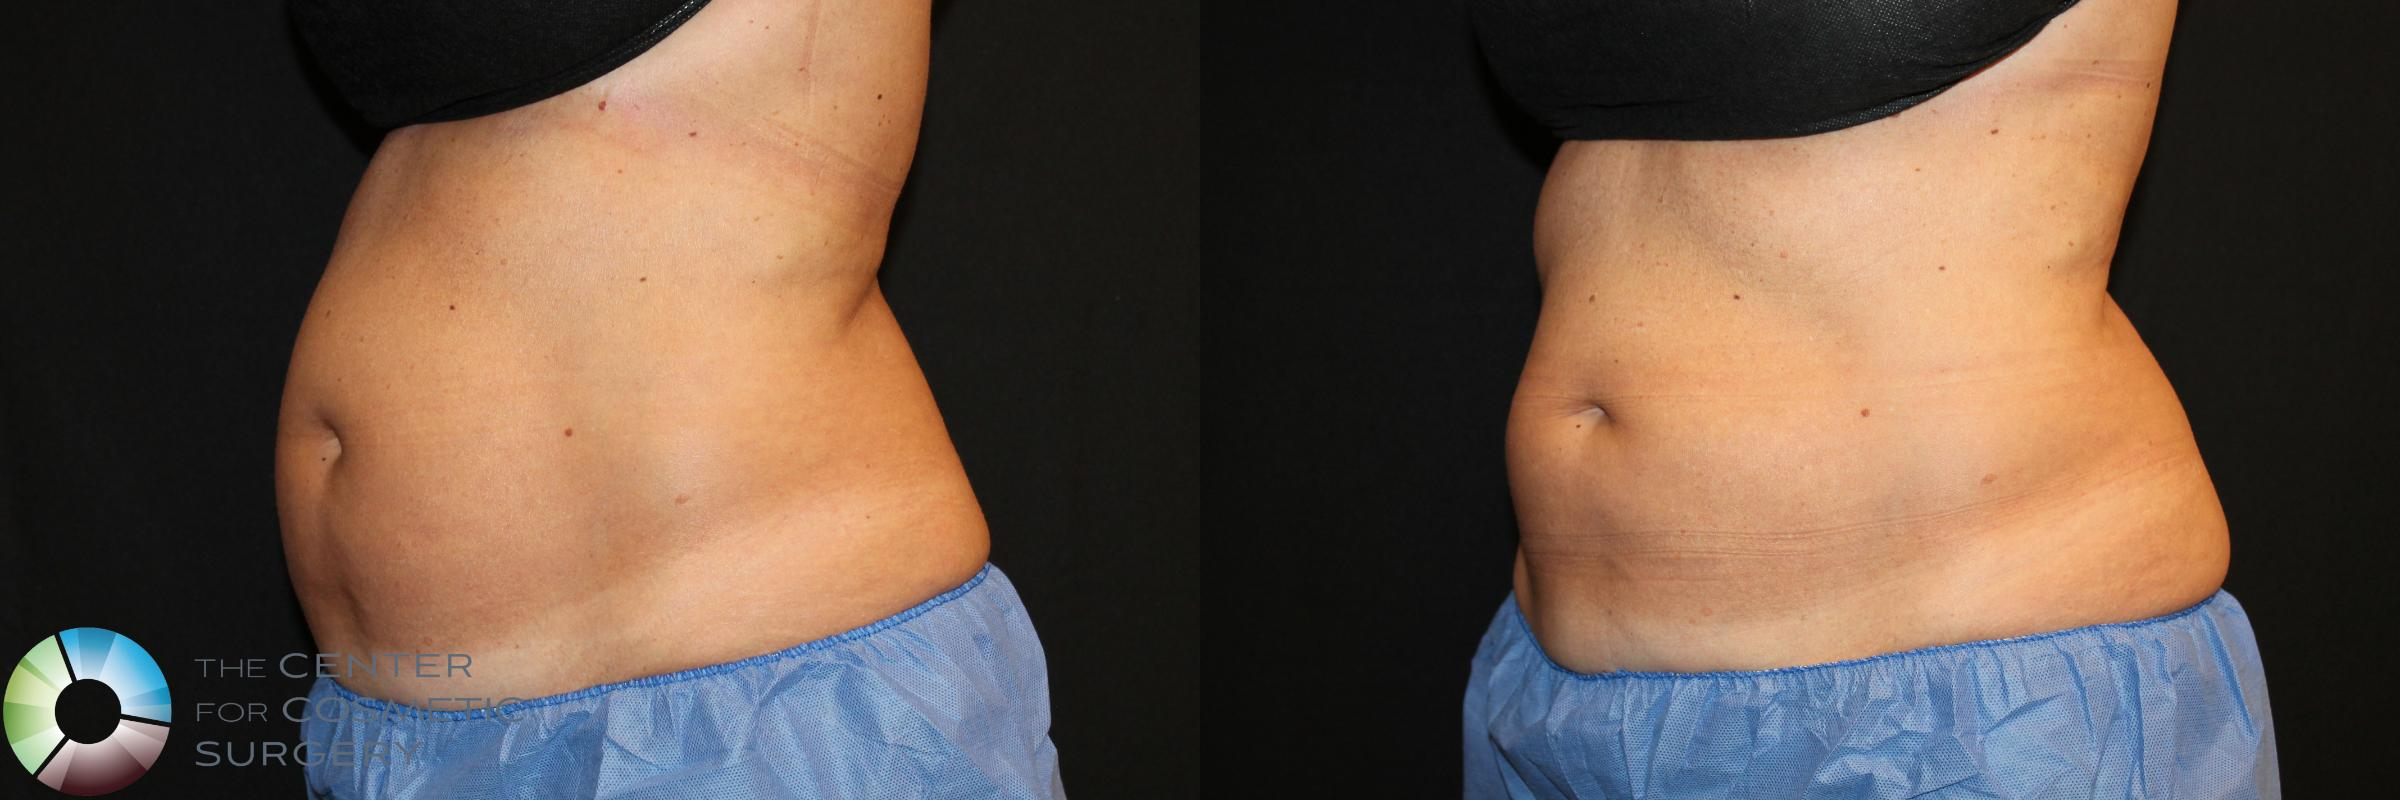 CoolSculpting Case 738 Before & After View #1 | Golden, CO | The Center for Cosmetic Surgery